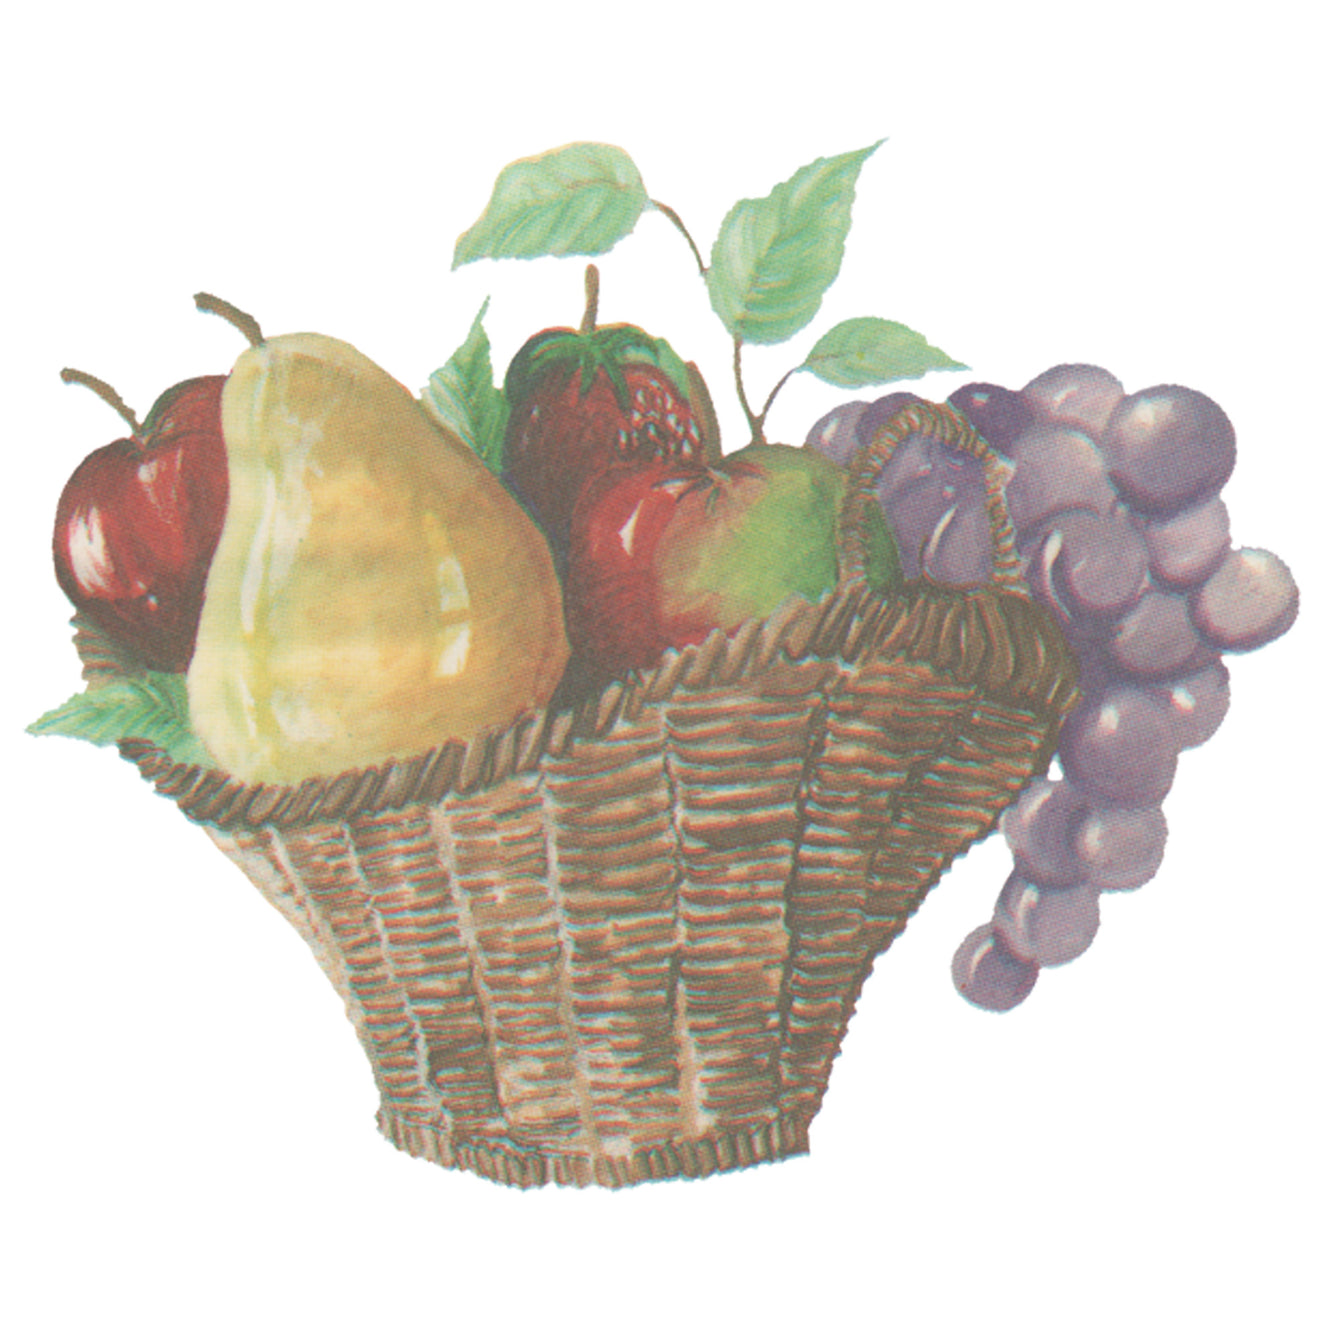 Water Slide Tile Transfers Inset Evesham Fair Basket of Fruit 5 Pack - Buy It Better Grecco Flower